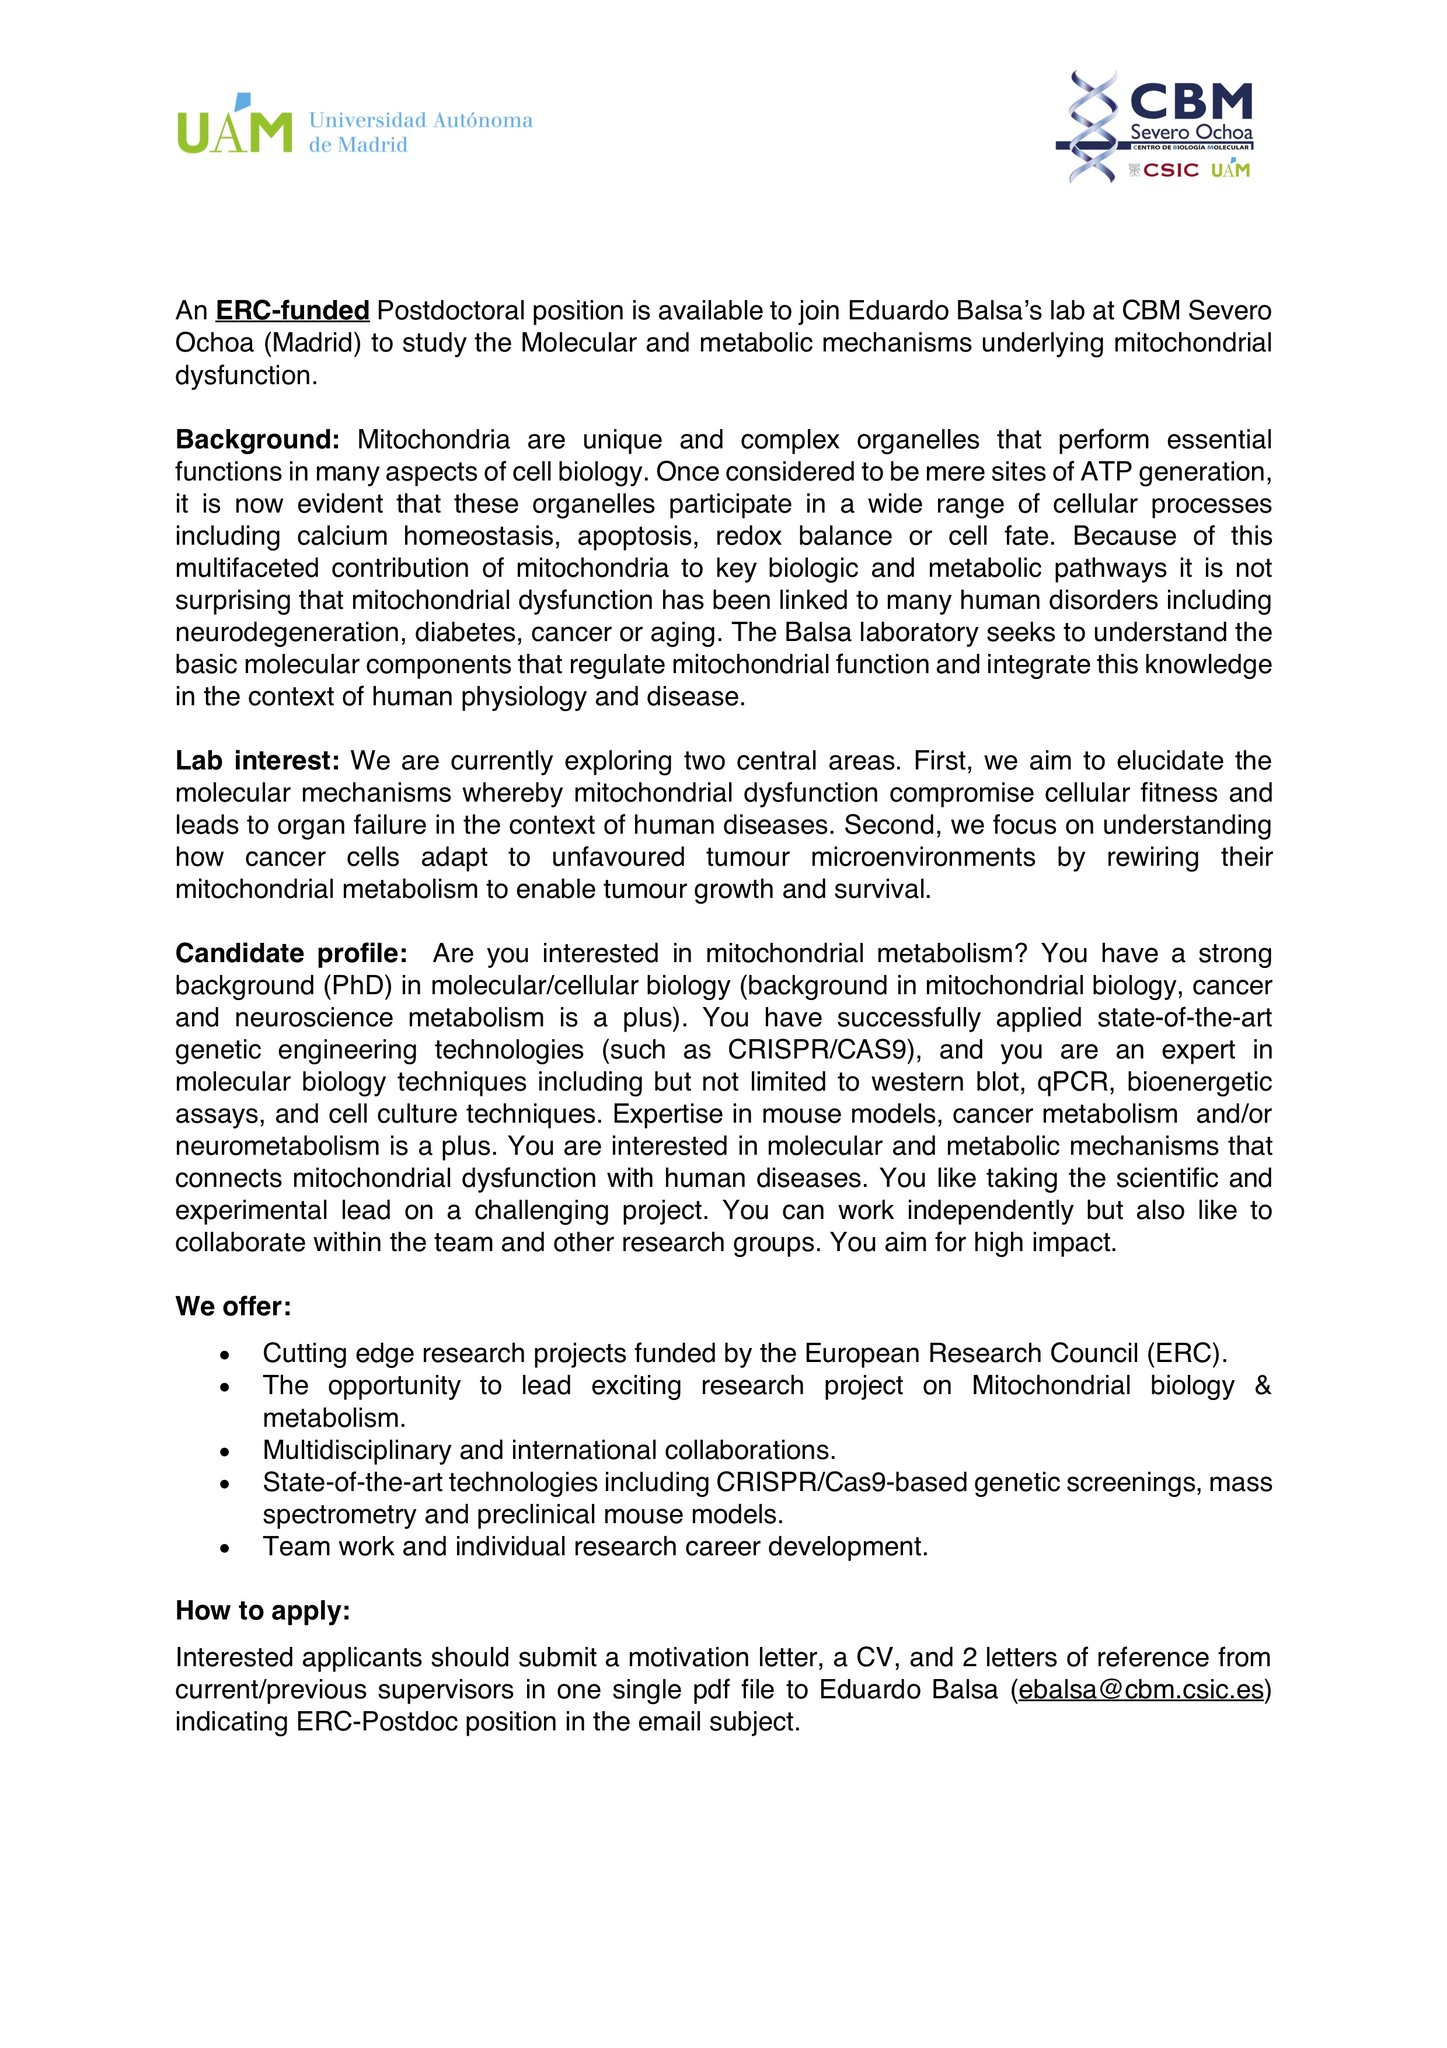 Eduardo Balsa On Twitter Hiring Alert We Are Looking For A Motivated Postdoc To Join Our Lab At Cbmso Csic Uam If You Are Interested In Mitochondrial Bilogy Amp Metabolism Please Apply Send Your Application Cover Letter